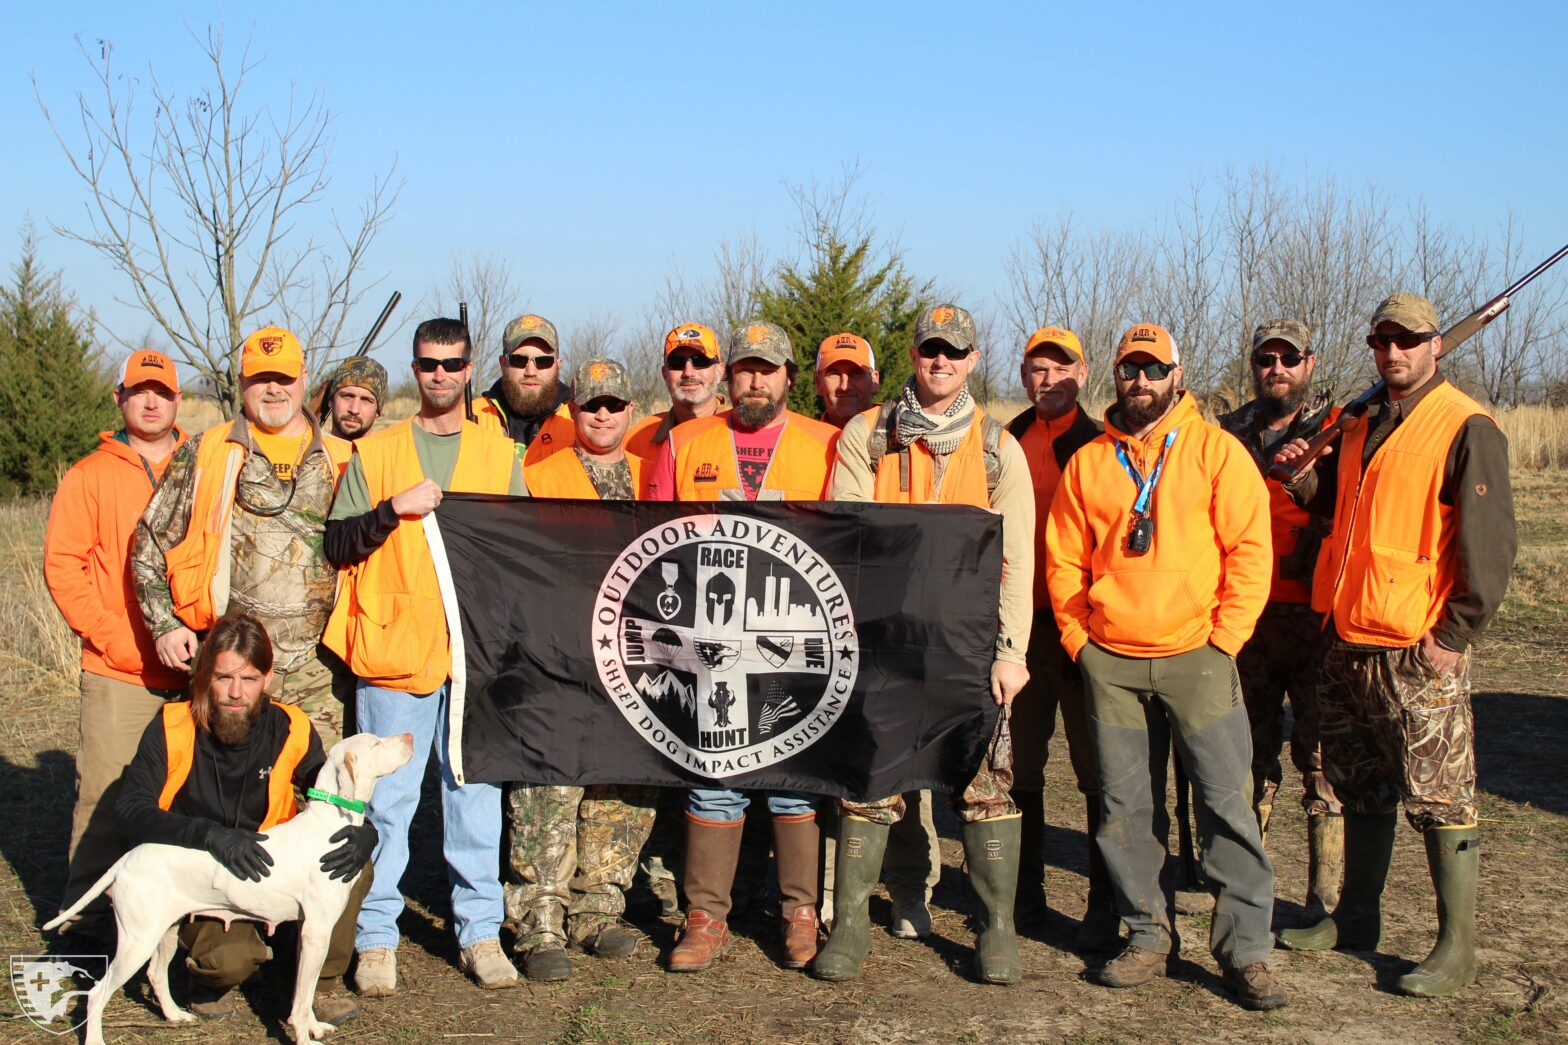 Hunting, Golfing & Skydiving Weekend Gives Veterans Much-Needed Camaraderie